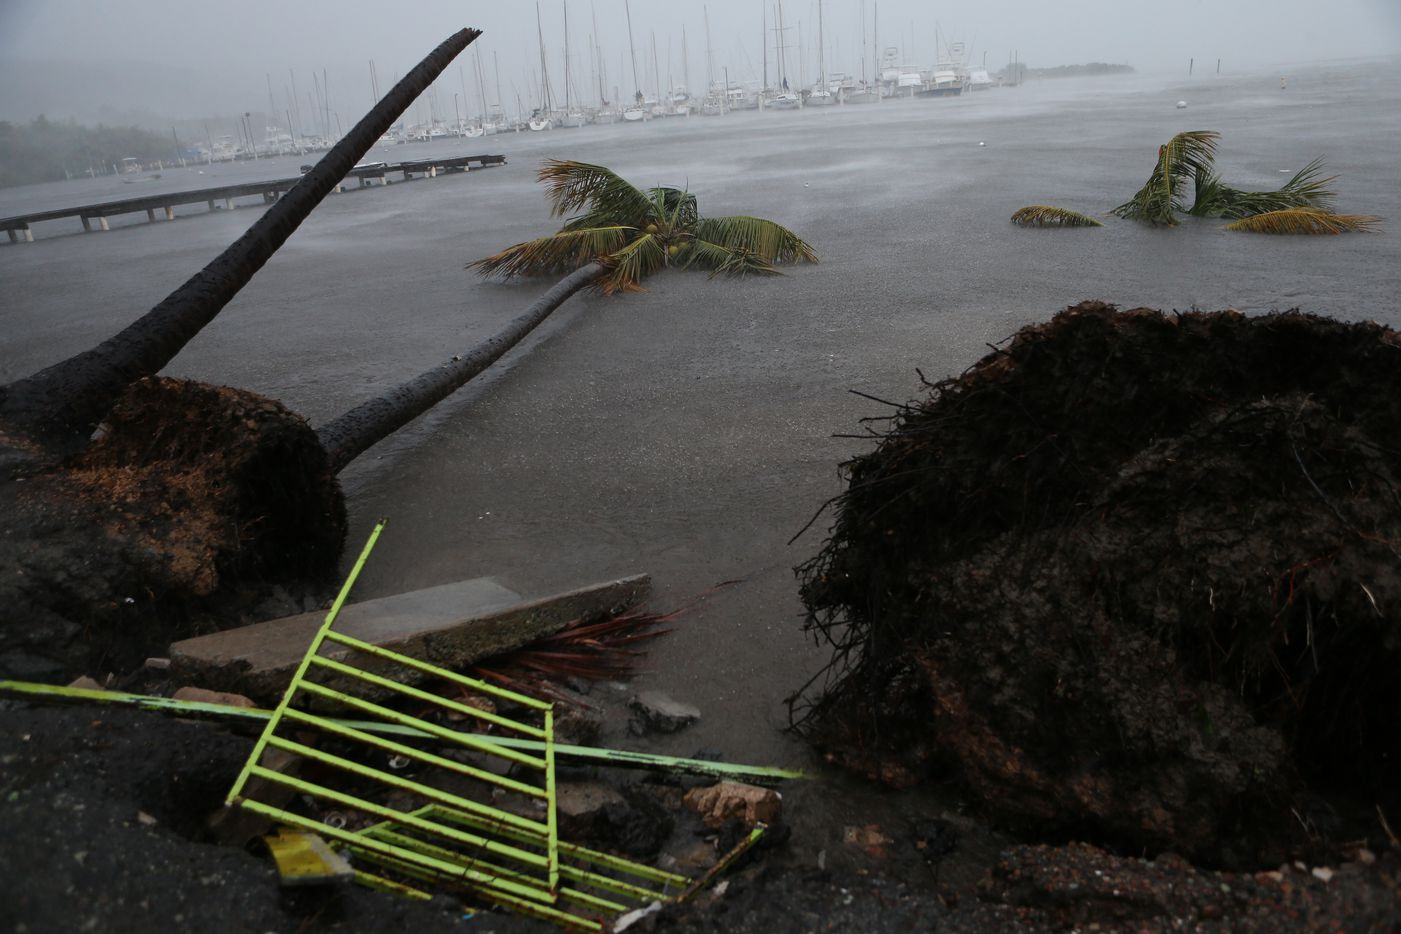 Debris is seen during a storm surge near the Puerto Chico Harbor during the passing of Hurricane Irma on Wednesday in Fajardo, Puerto Rico.